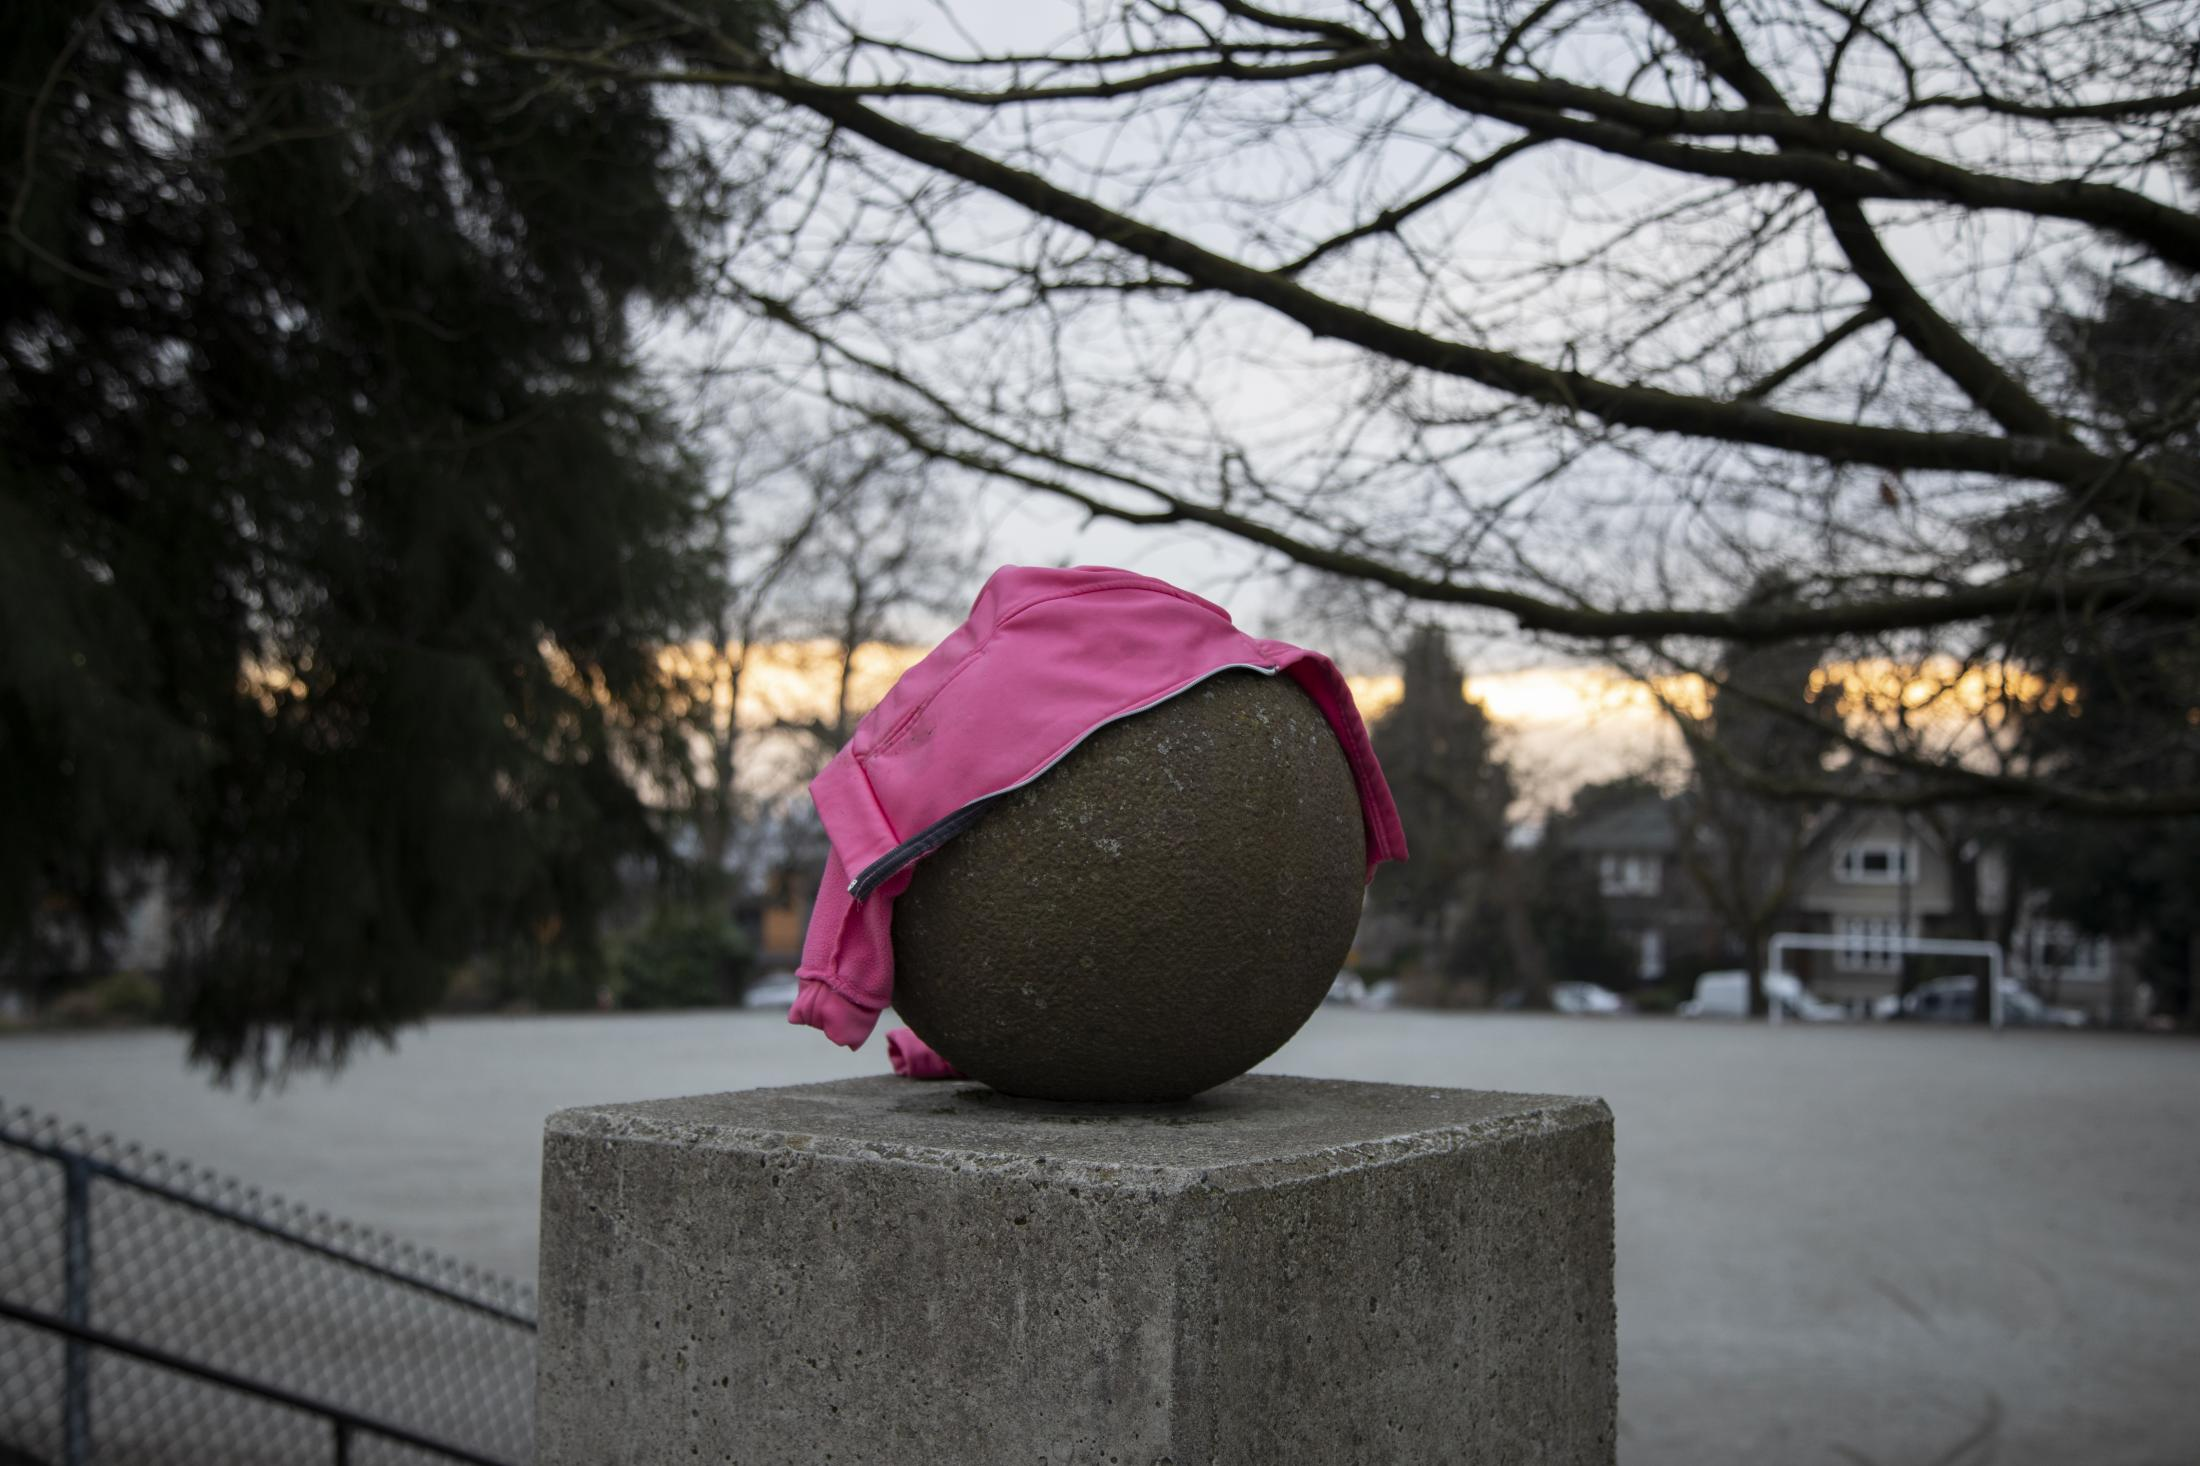 A sweater is seen at a playground at Ridgeway Elementary in North Vancouver, B.C., on Sunday, March 22, 2020. Effective Friday, March 20, 2020, the City and District of North Vancouver have closed all playgrounds and playing fields in an attempt to curb the spread of COVID-19. North Vancouver has been a hotspot of COVID-19, with ten deaths connected to the Lynn Valley Care Centre as of Monday, March 23, 2020.